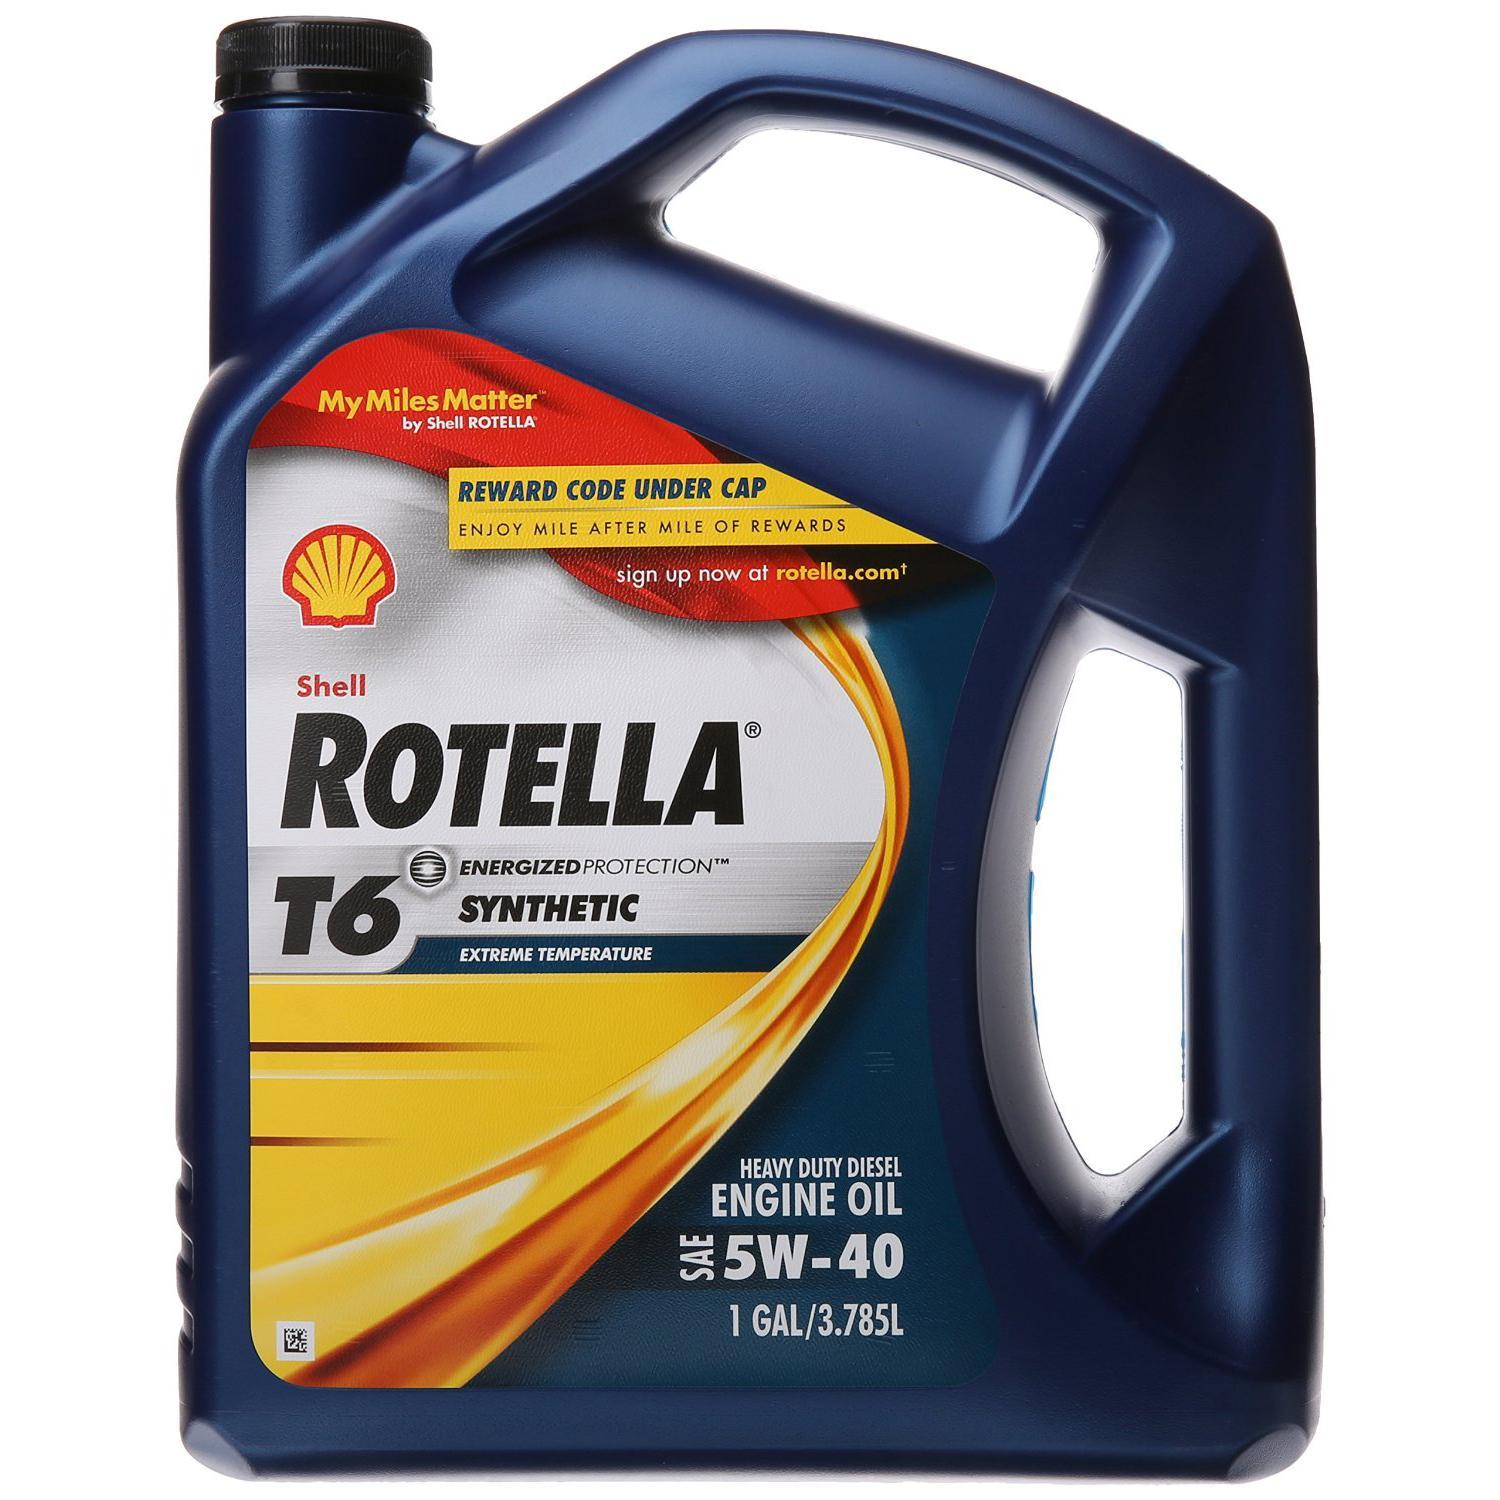 Shell rotella t6 5w 40 full synthetic motor oil best price Best price on motor oil